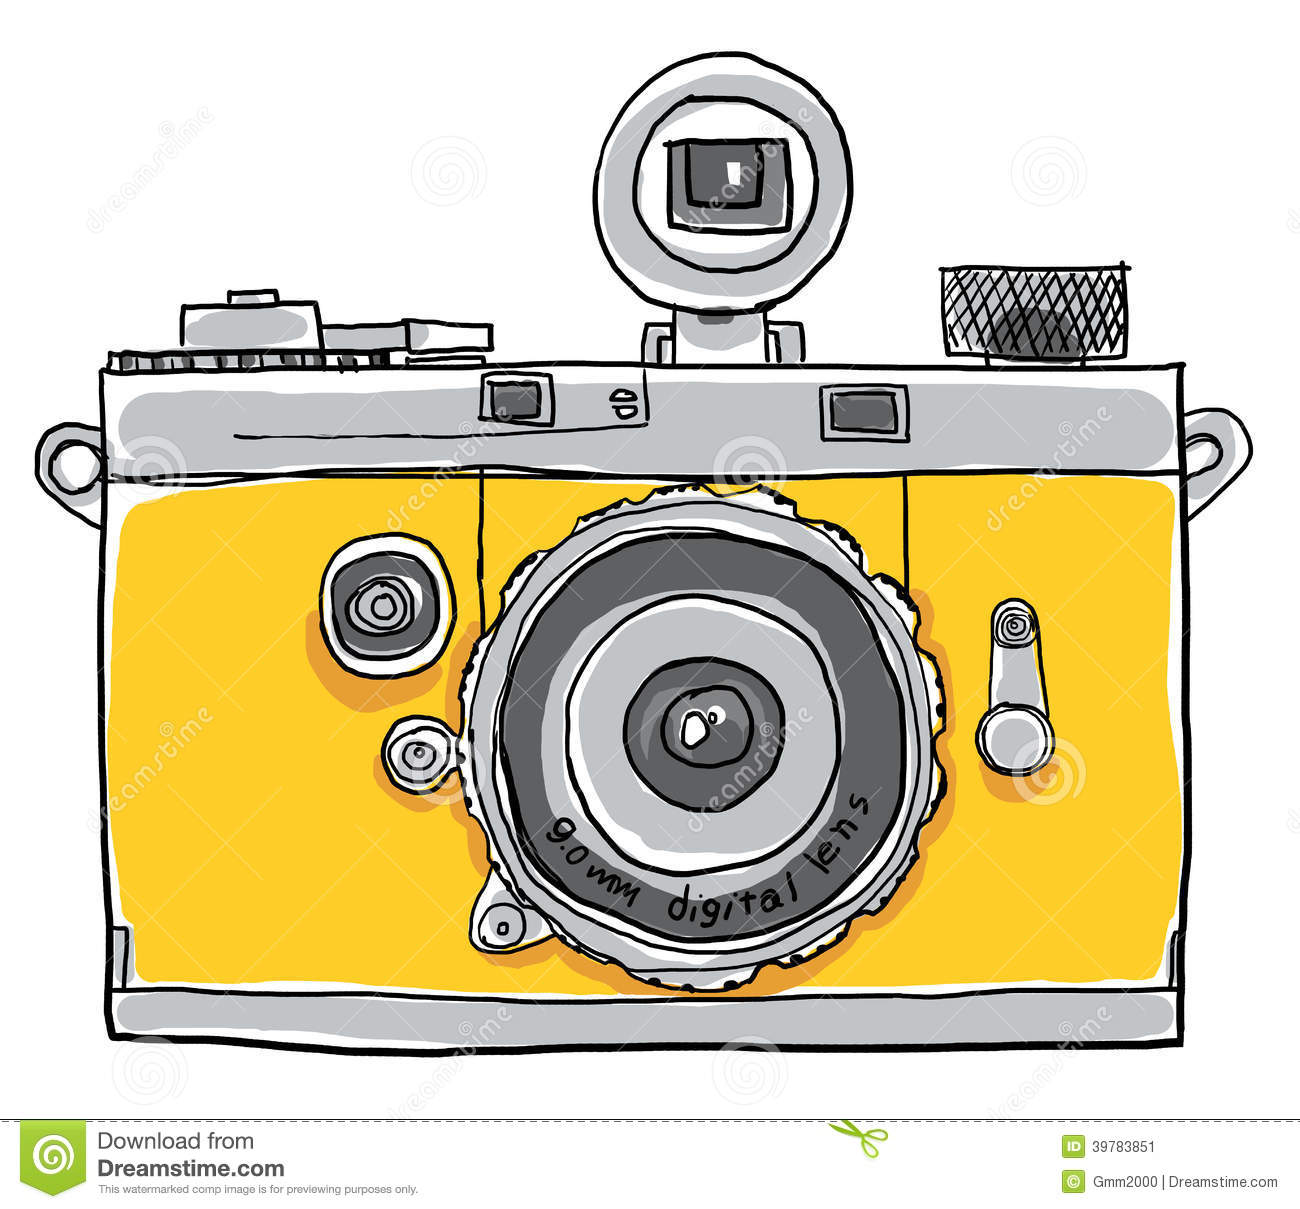 camera clip art app - photo #23